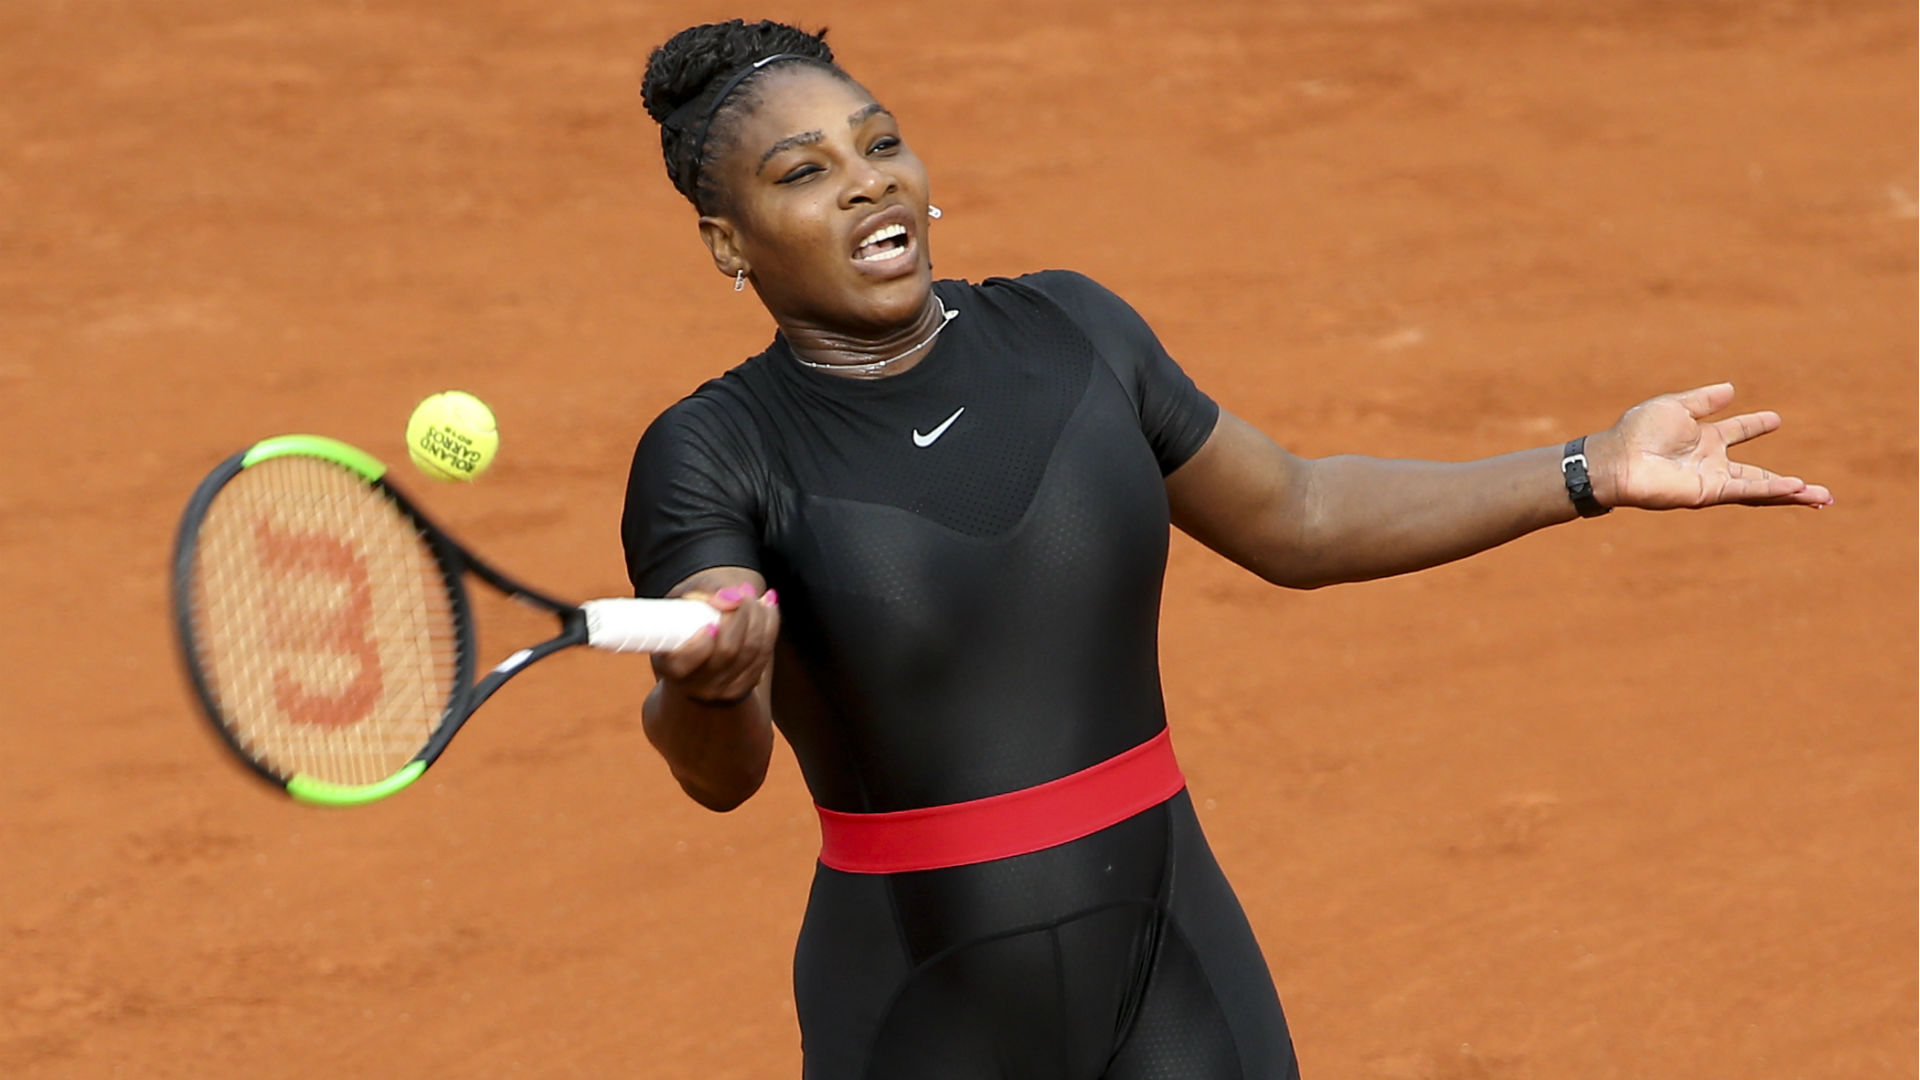 Serena Williams and Maria Sharapova make winning starts to French Open campaigns